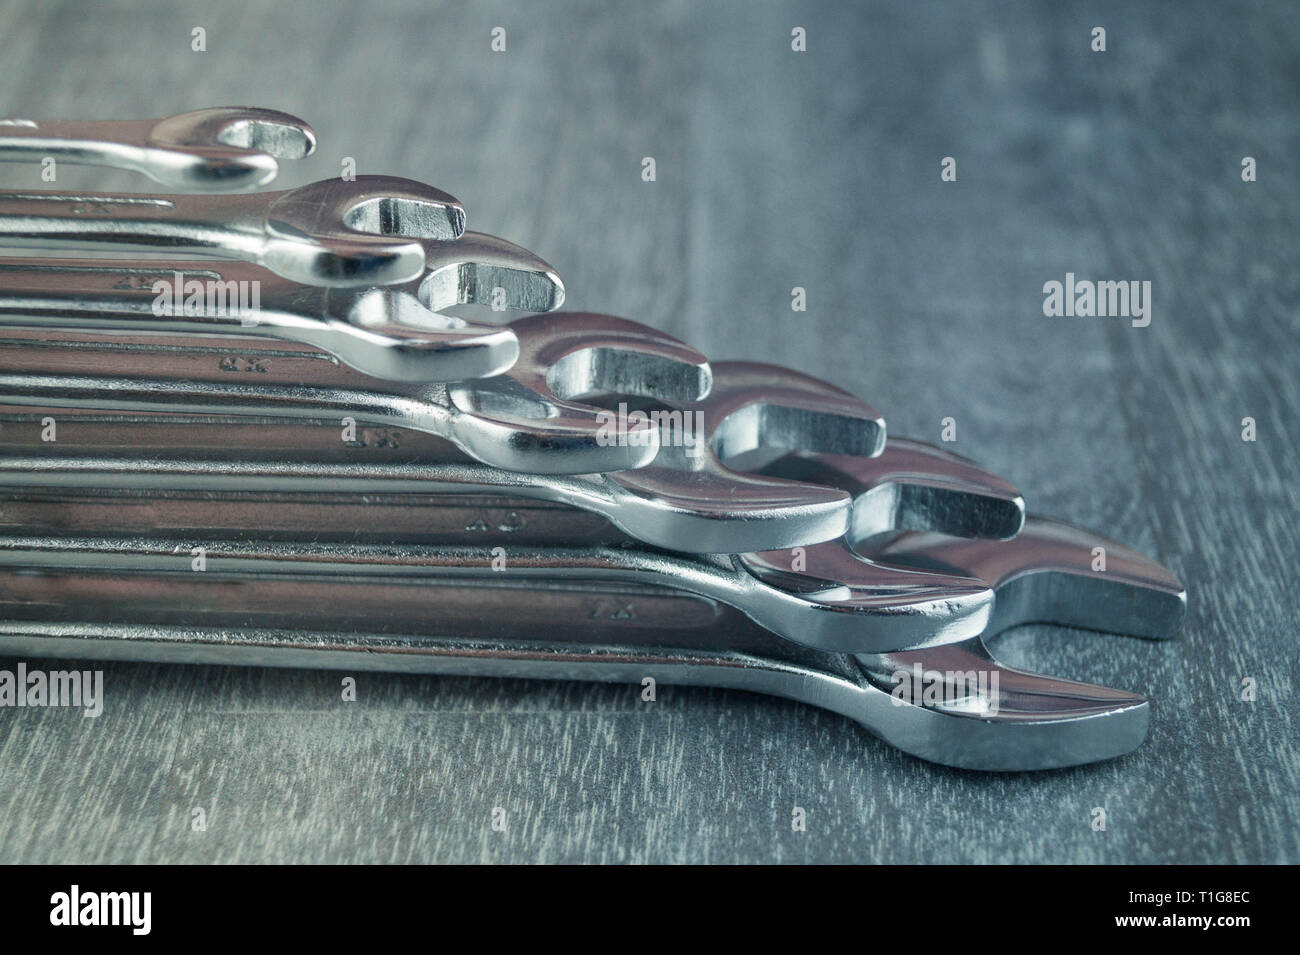 a set of wrenches in different sizes - Stock Image